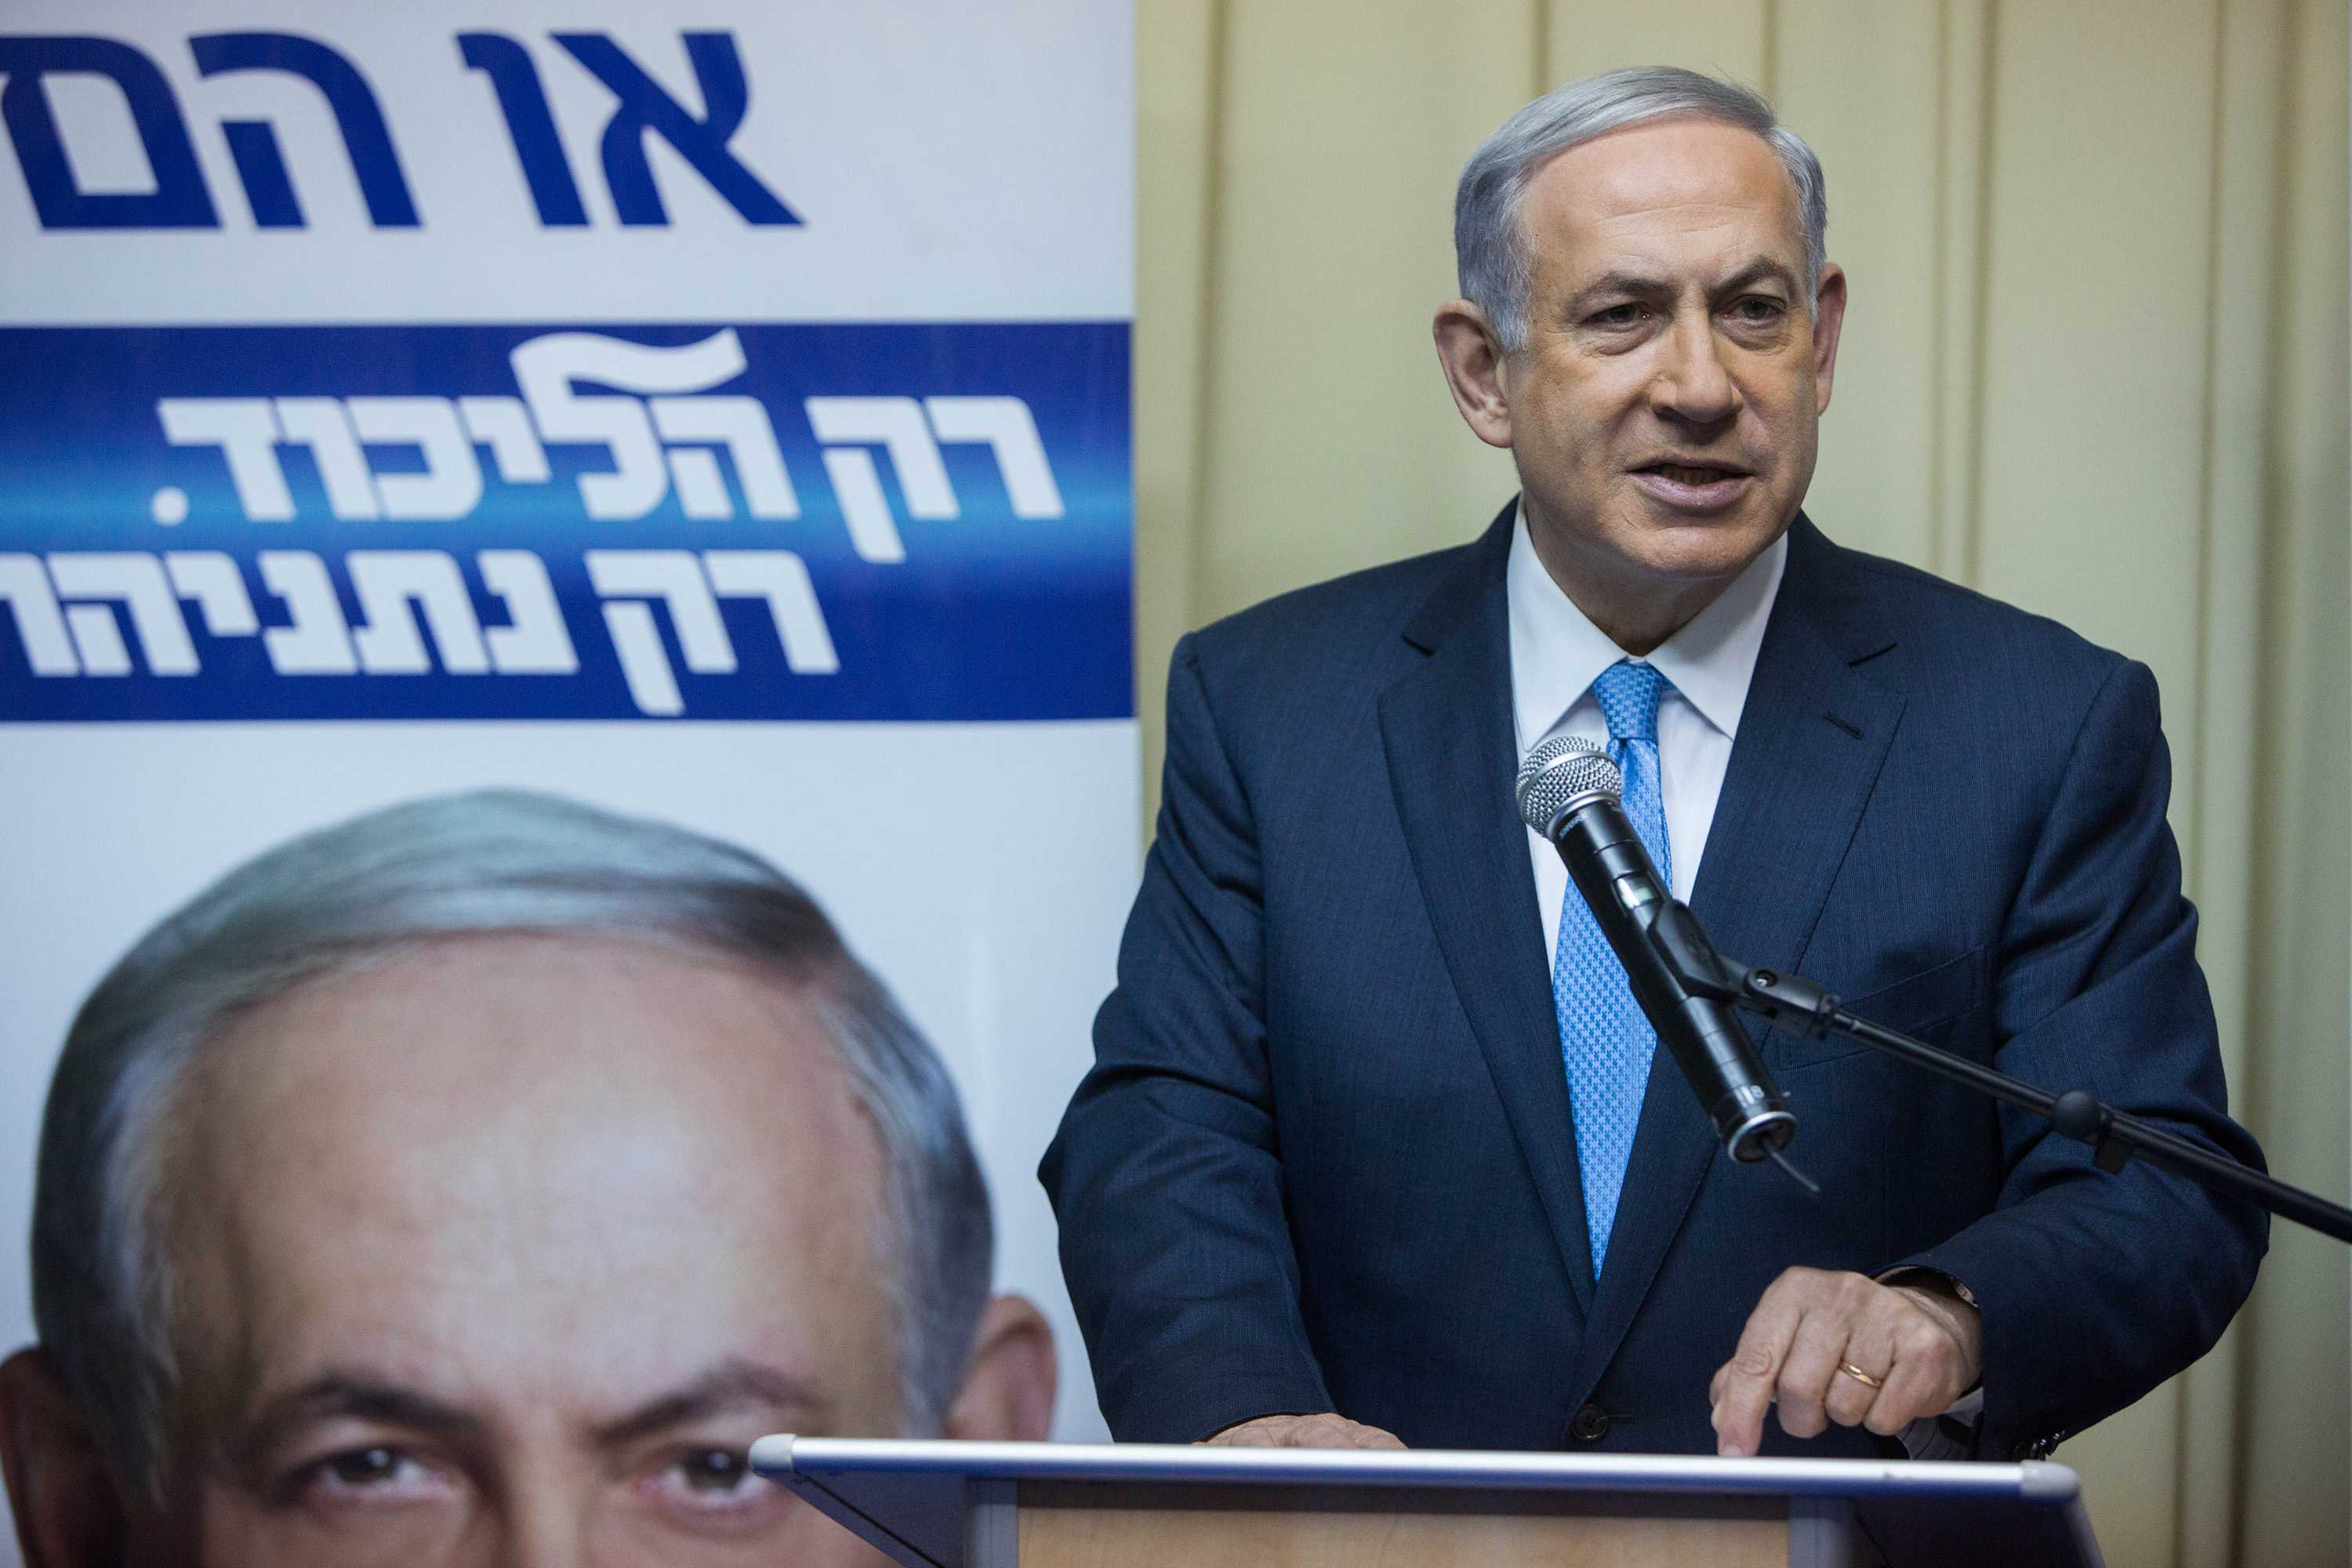 Prime Minister Benjamin Netanyahu's Likud Party once after a brief tie with the centre-left Zionist Union. (Xinhua/Zuma Press/MCT)